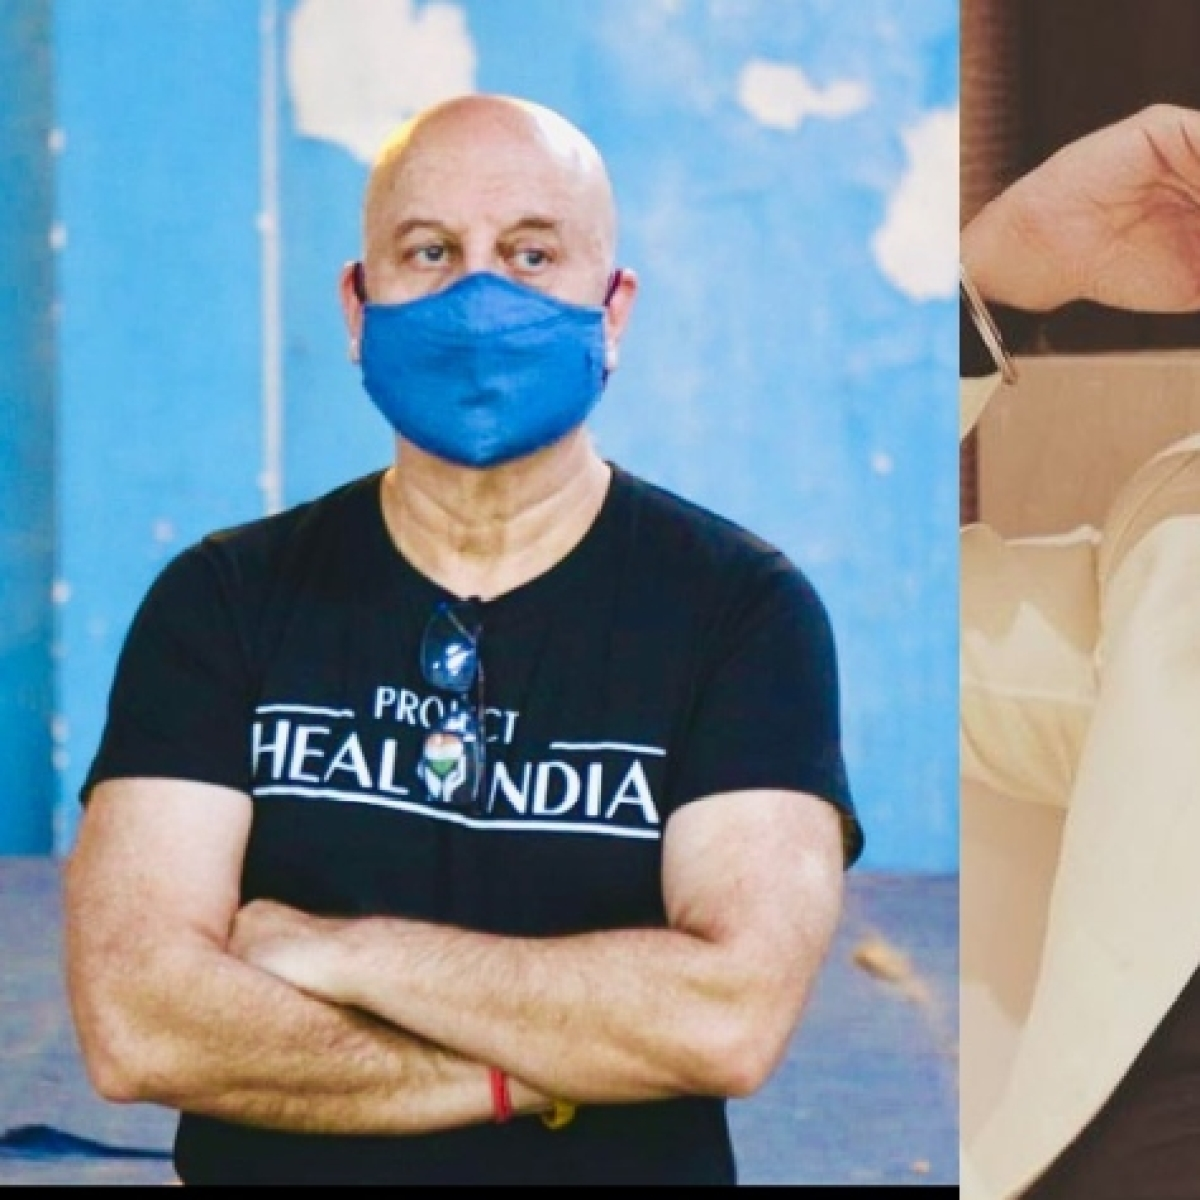 Ssumier Pasricha slams Anupam Kher for complaining about losing Twitter followers amid COVID-19 pandemic